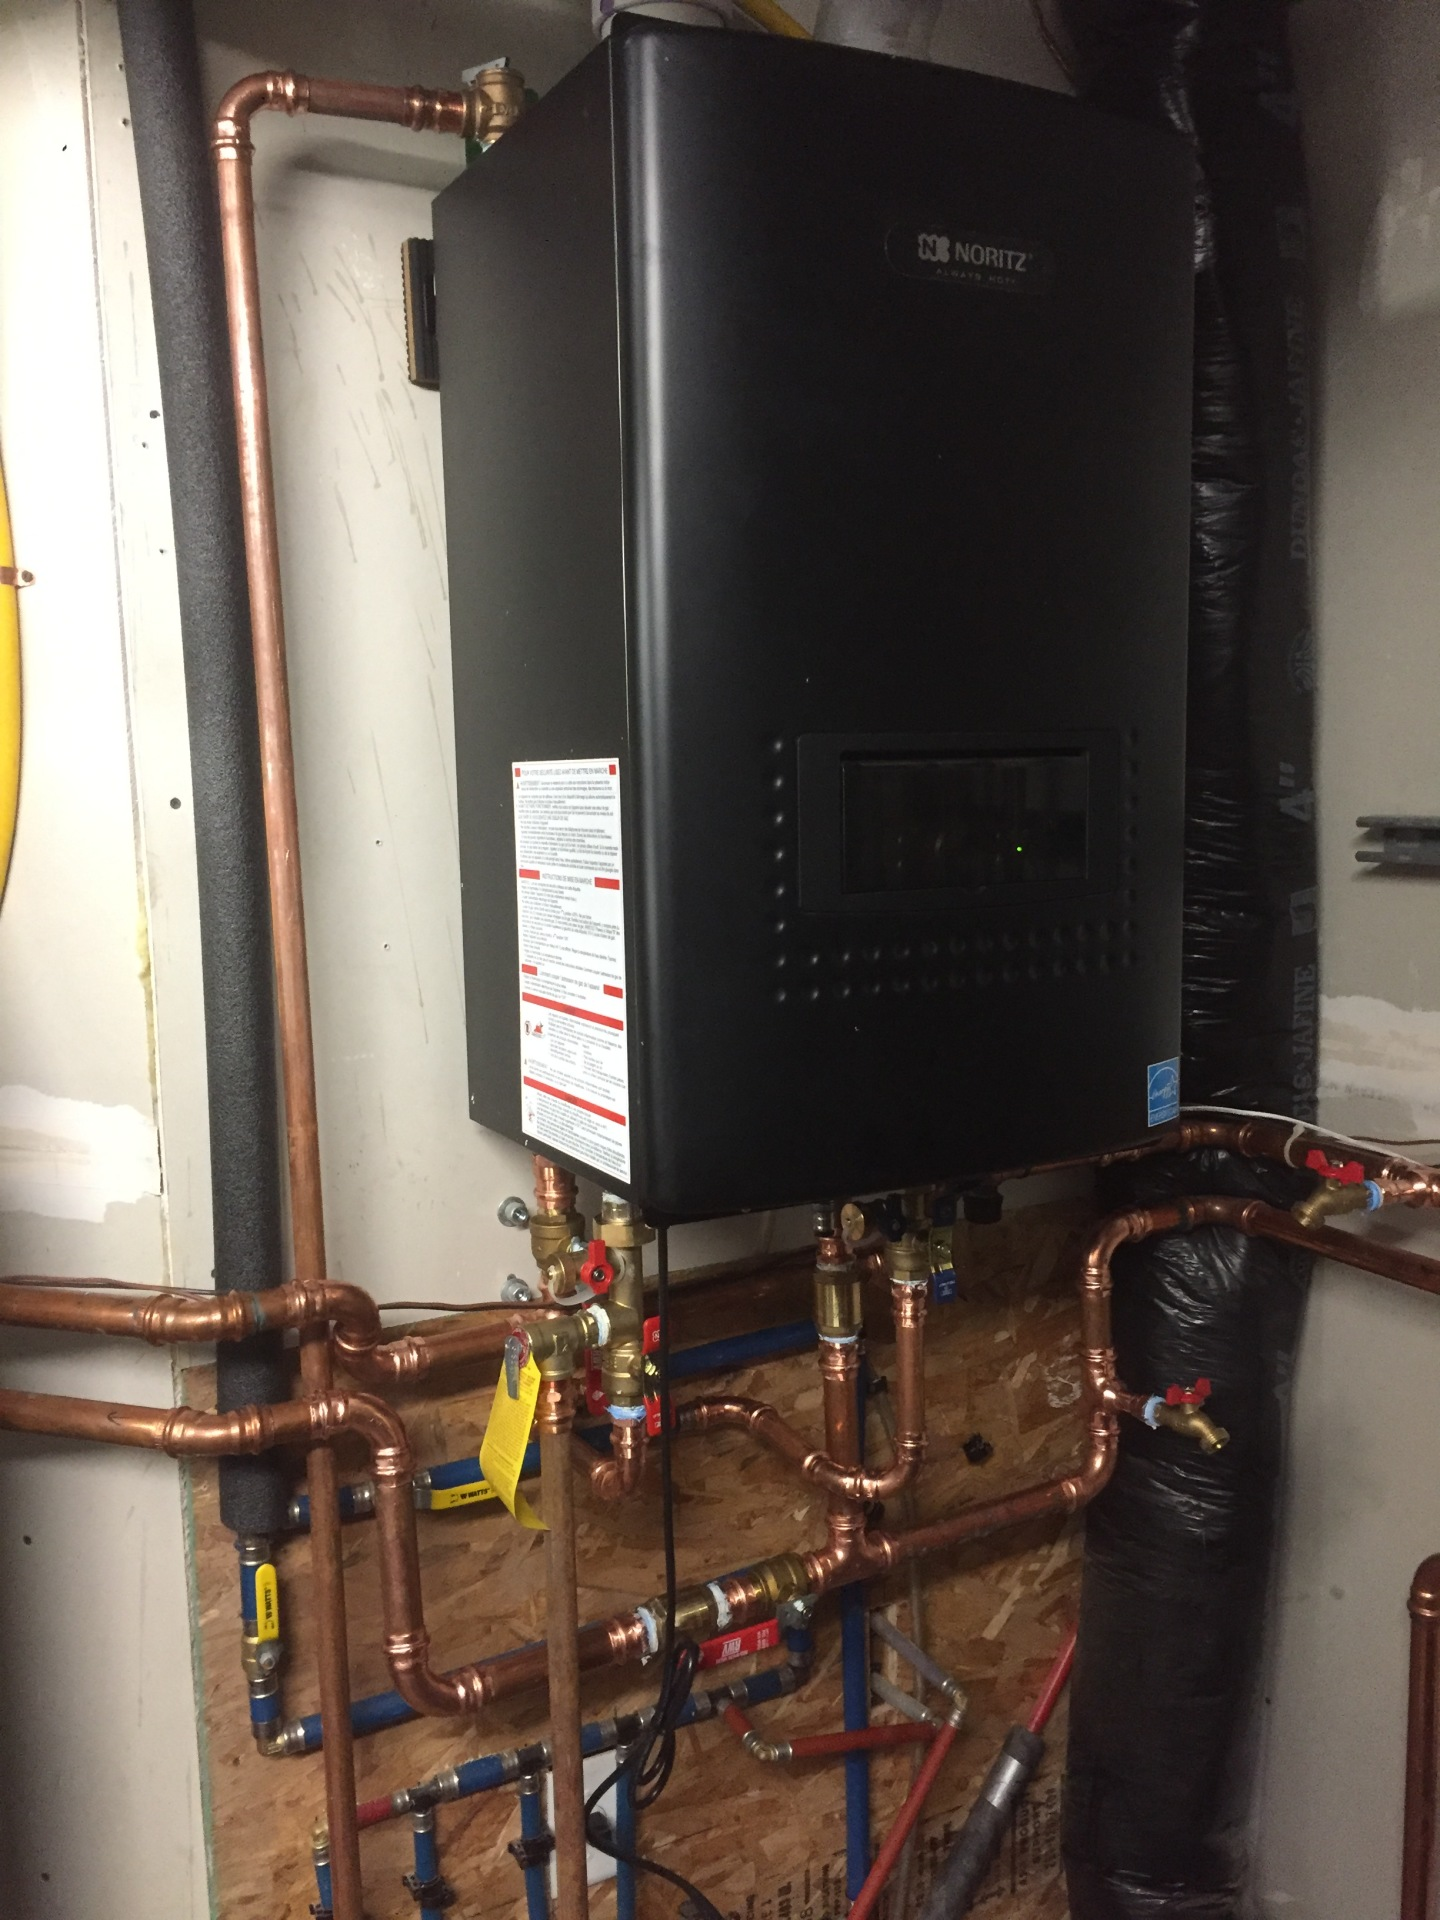 Noritz Combi on demand water heater and Waterfurnace backup